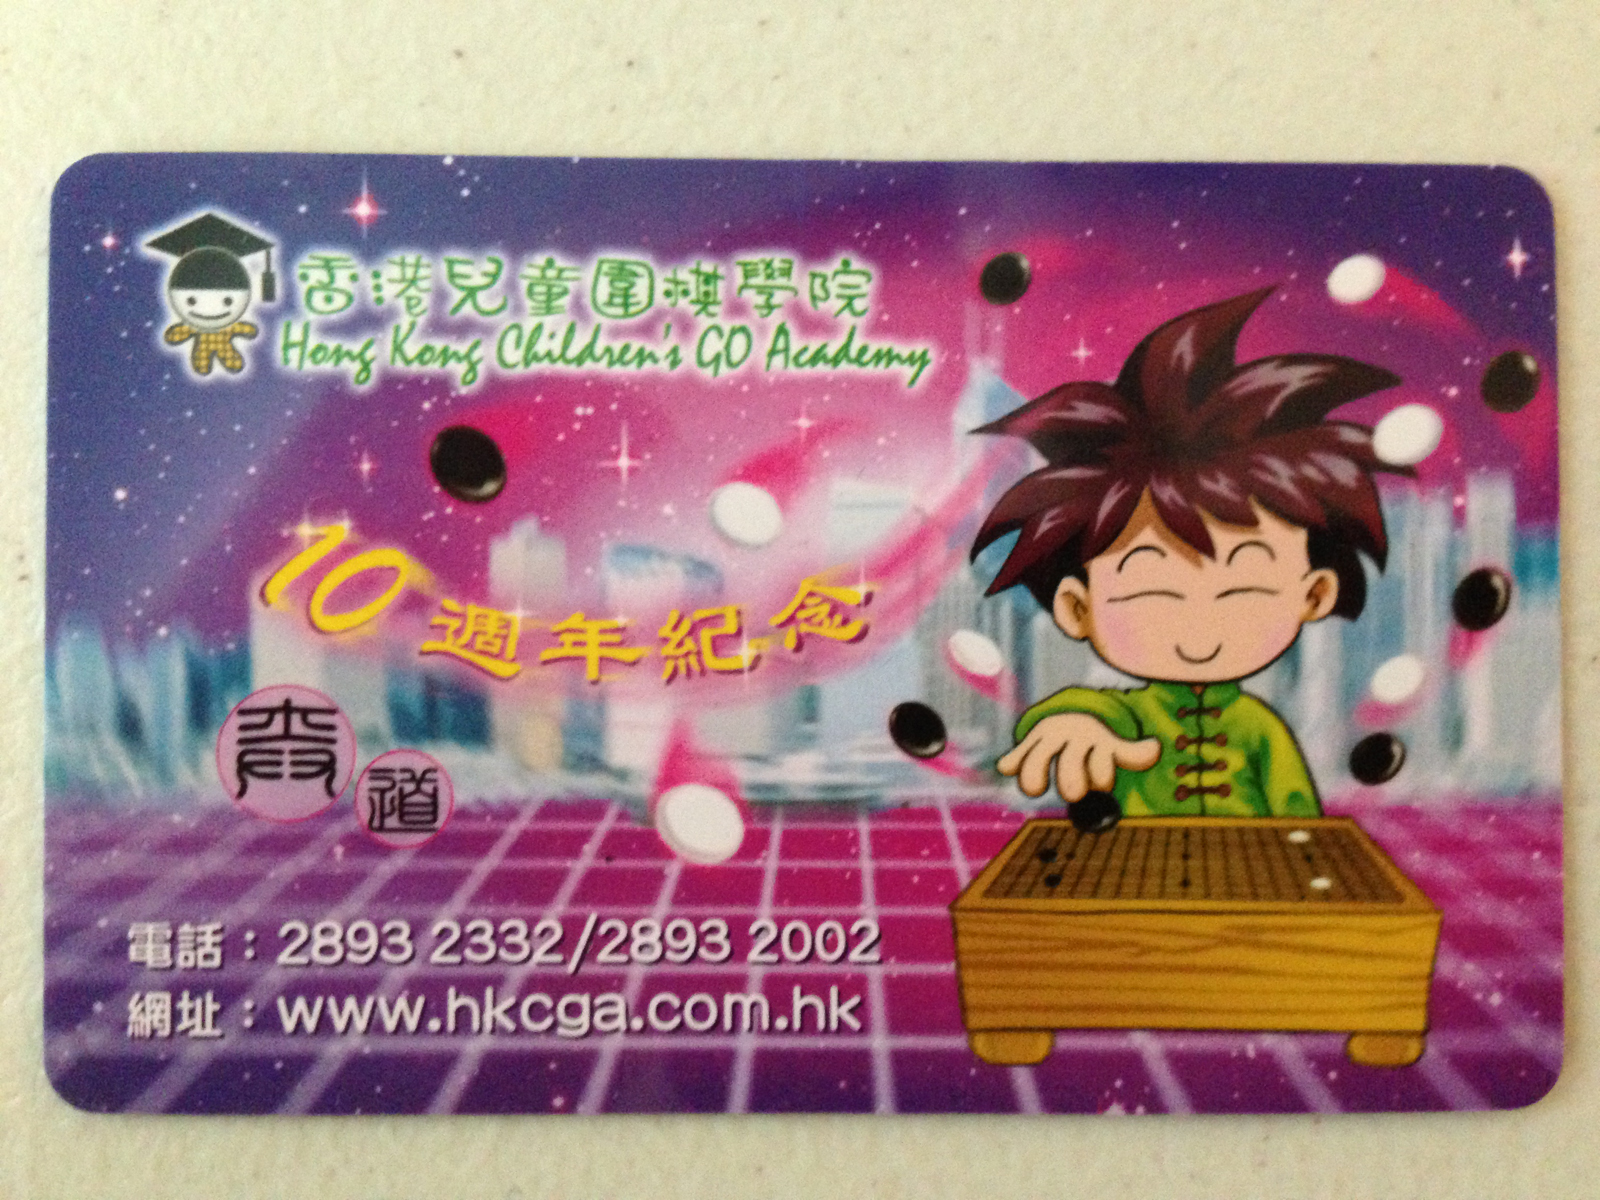 A neat calendar card to put in your wallet (front)